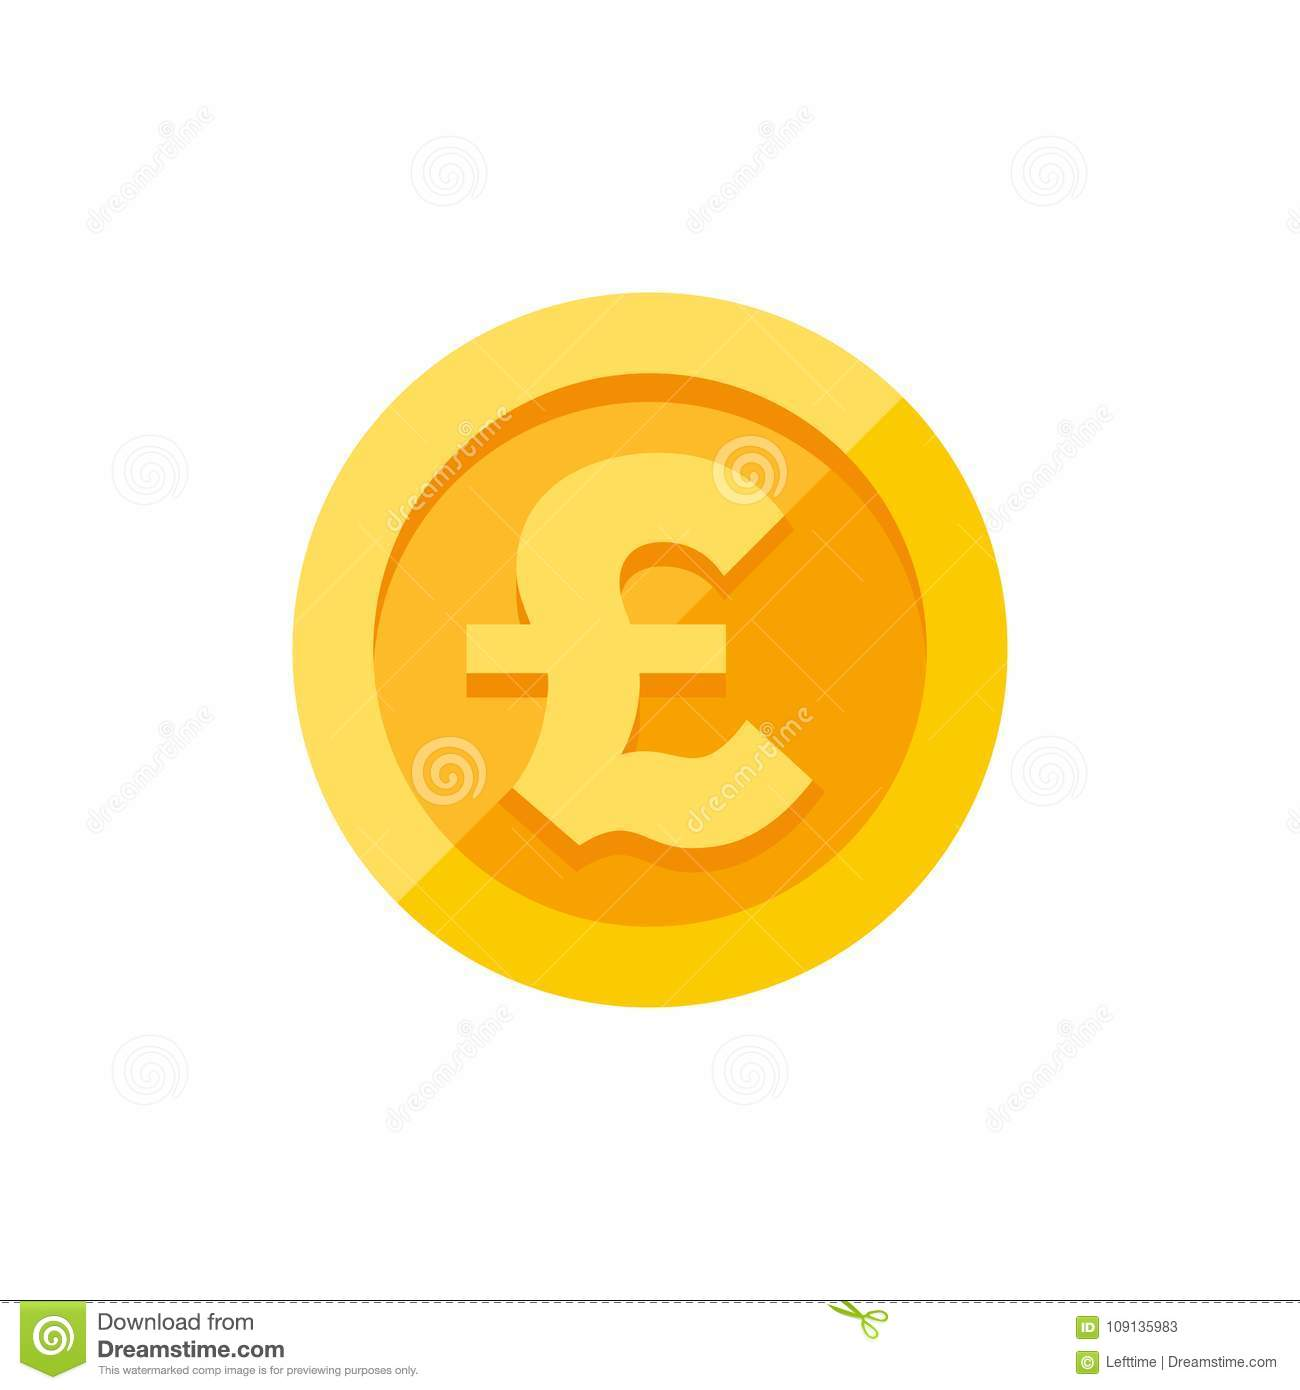 British Pound Sterling Symbol On Gold Coin Flat Style Stock Vector